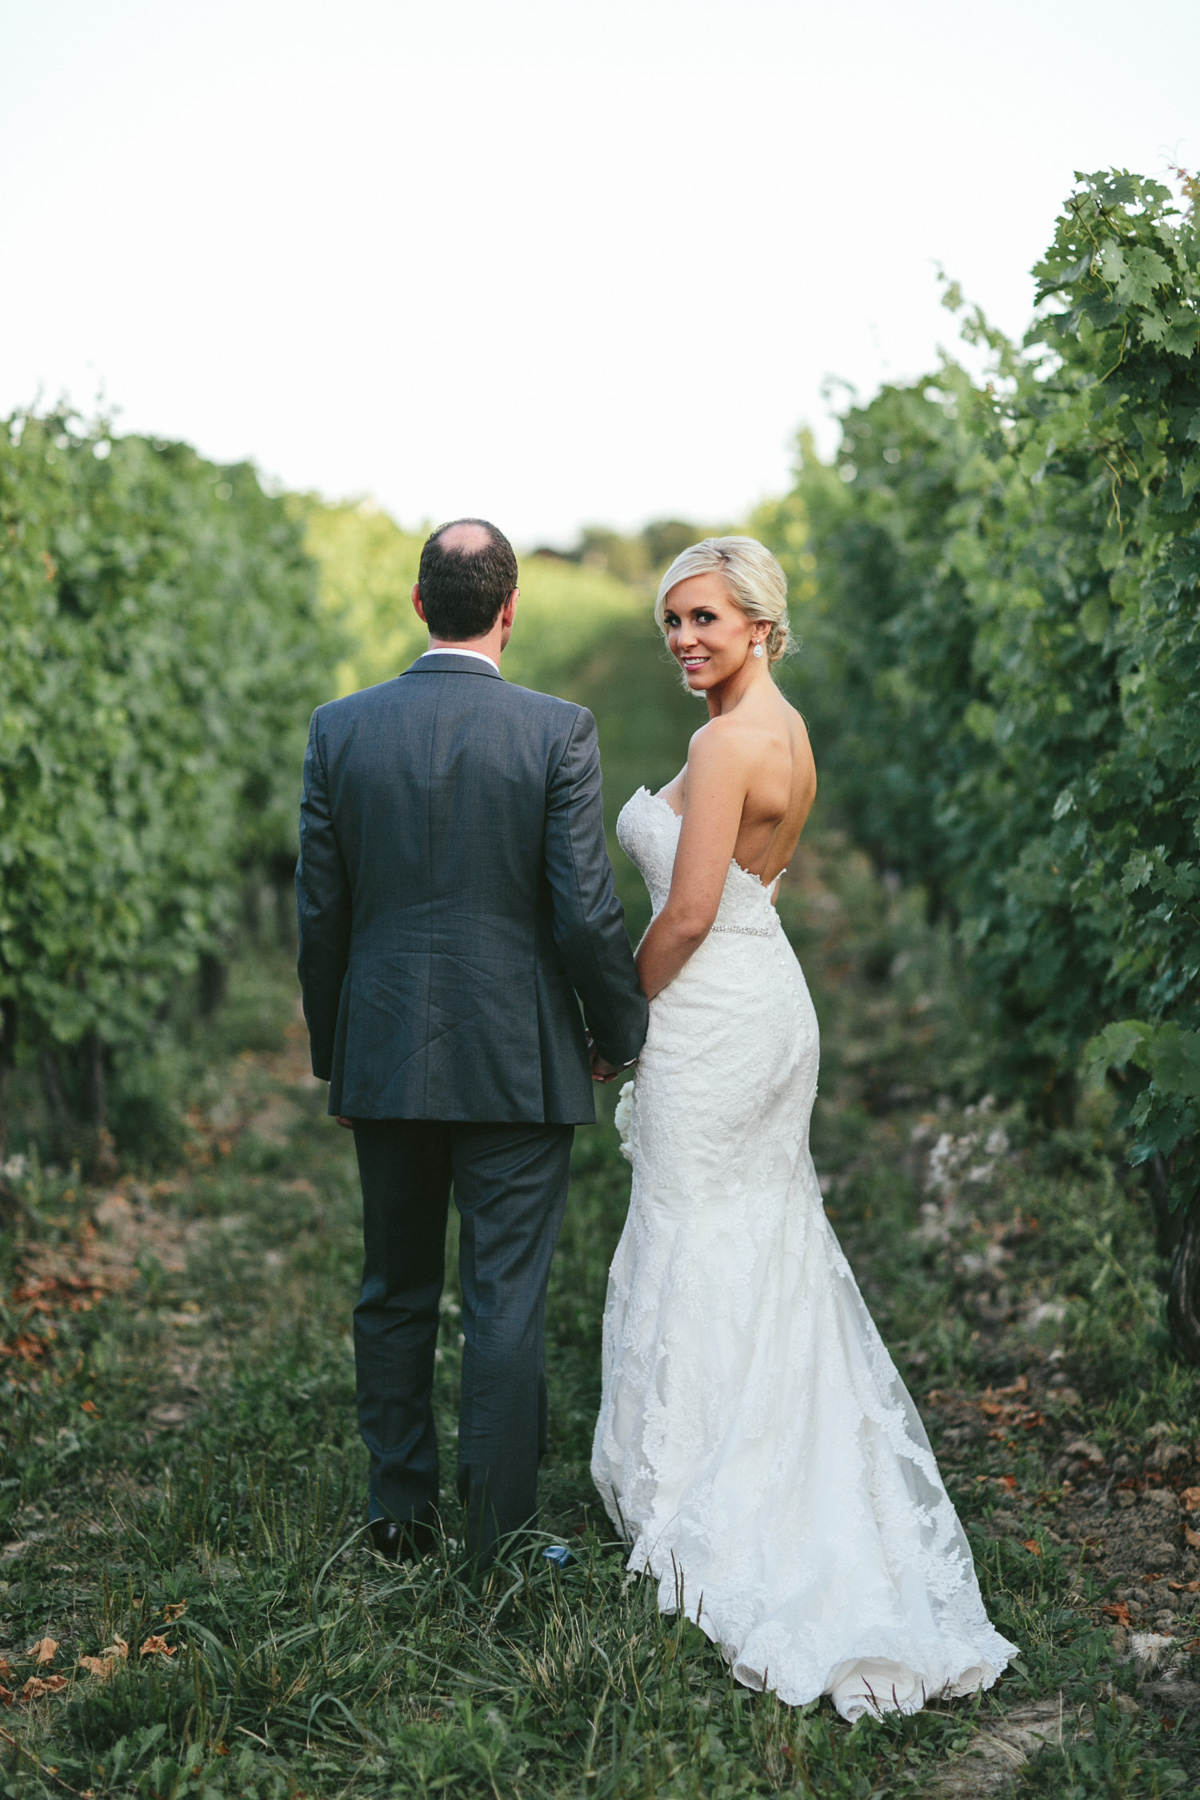 brandon-scott-photography-vineyard-bride-swish-list-stratus-vineyard-niagara-on-the-lake-wedding-40.jpg